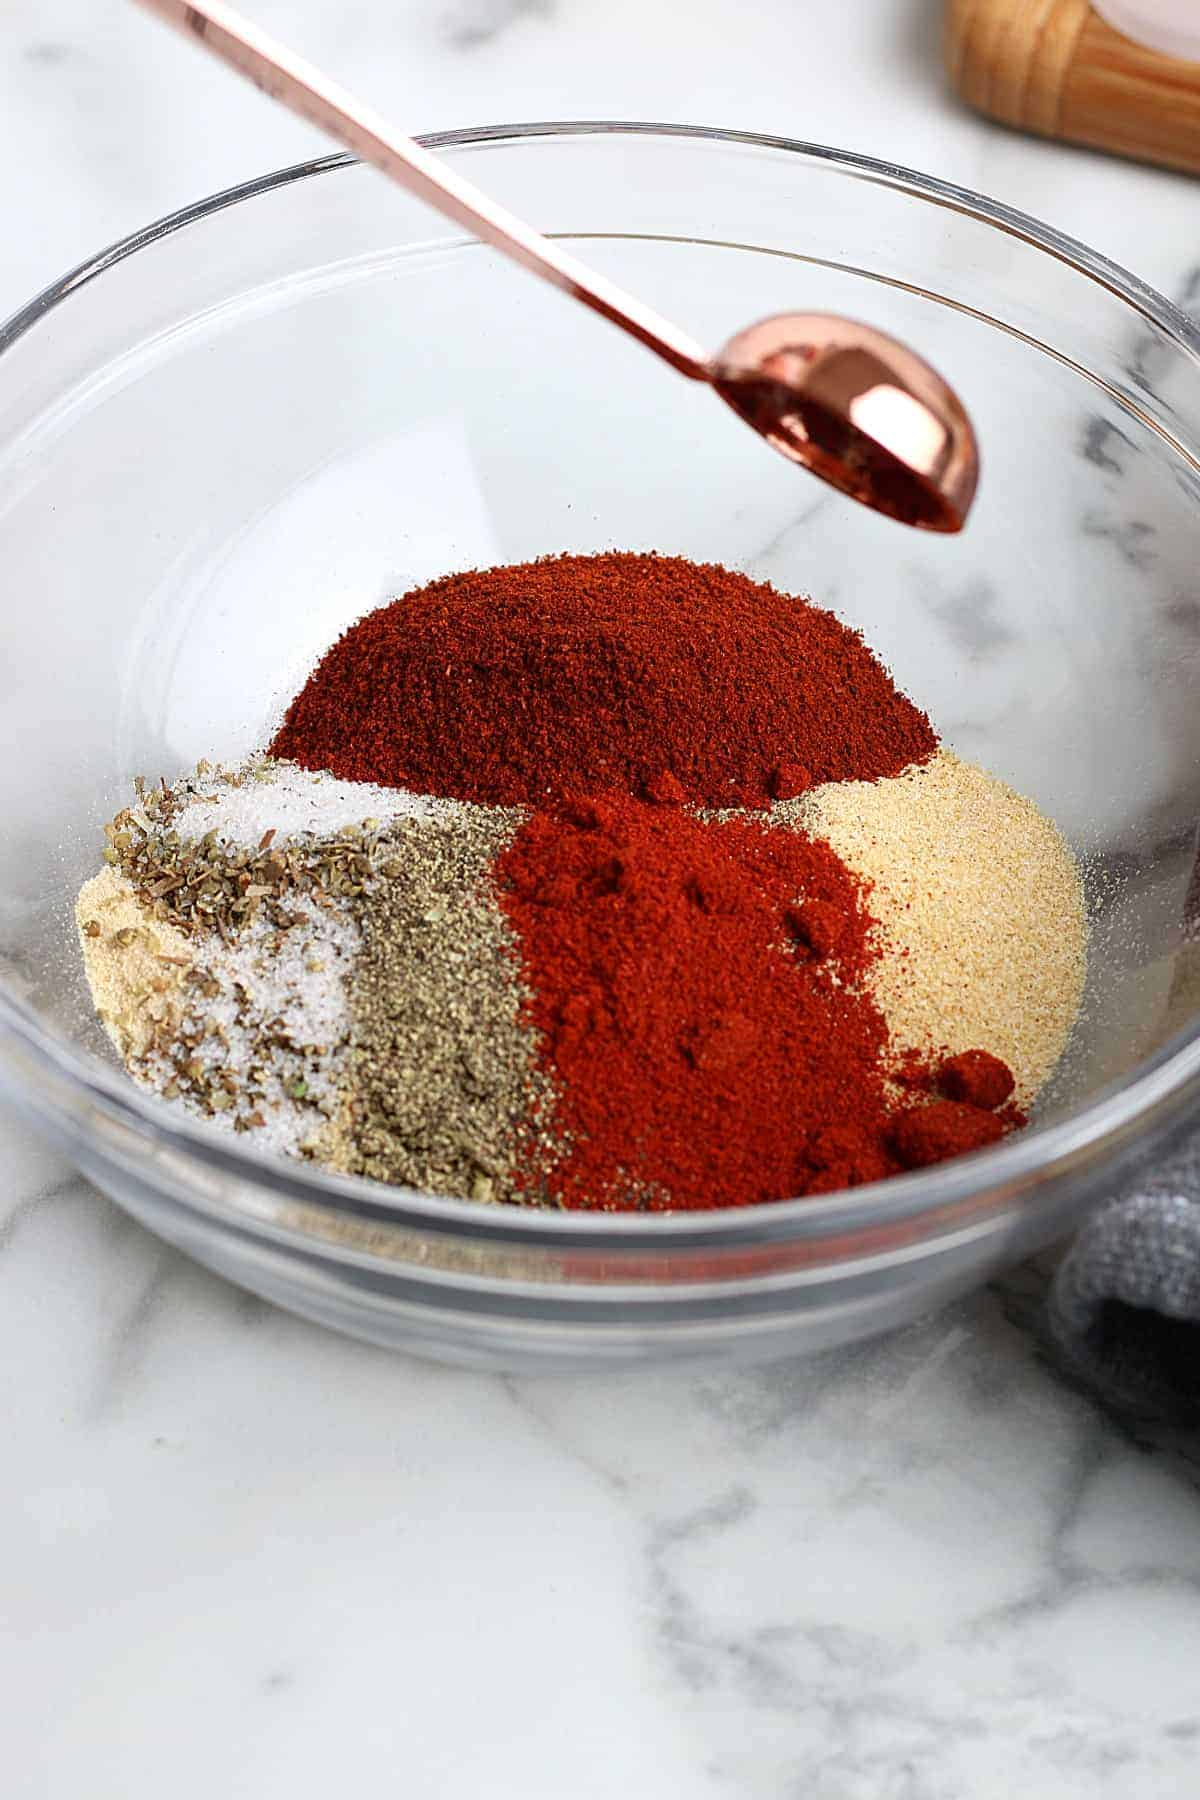 Lots of chili powder added to the beginning spice mix.